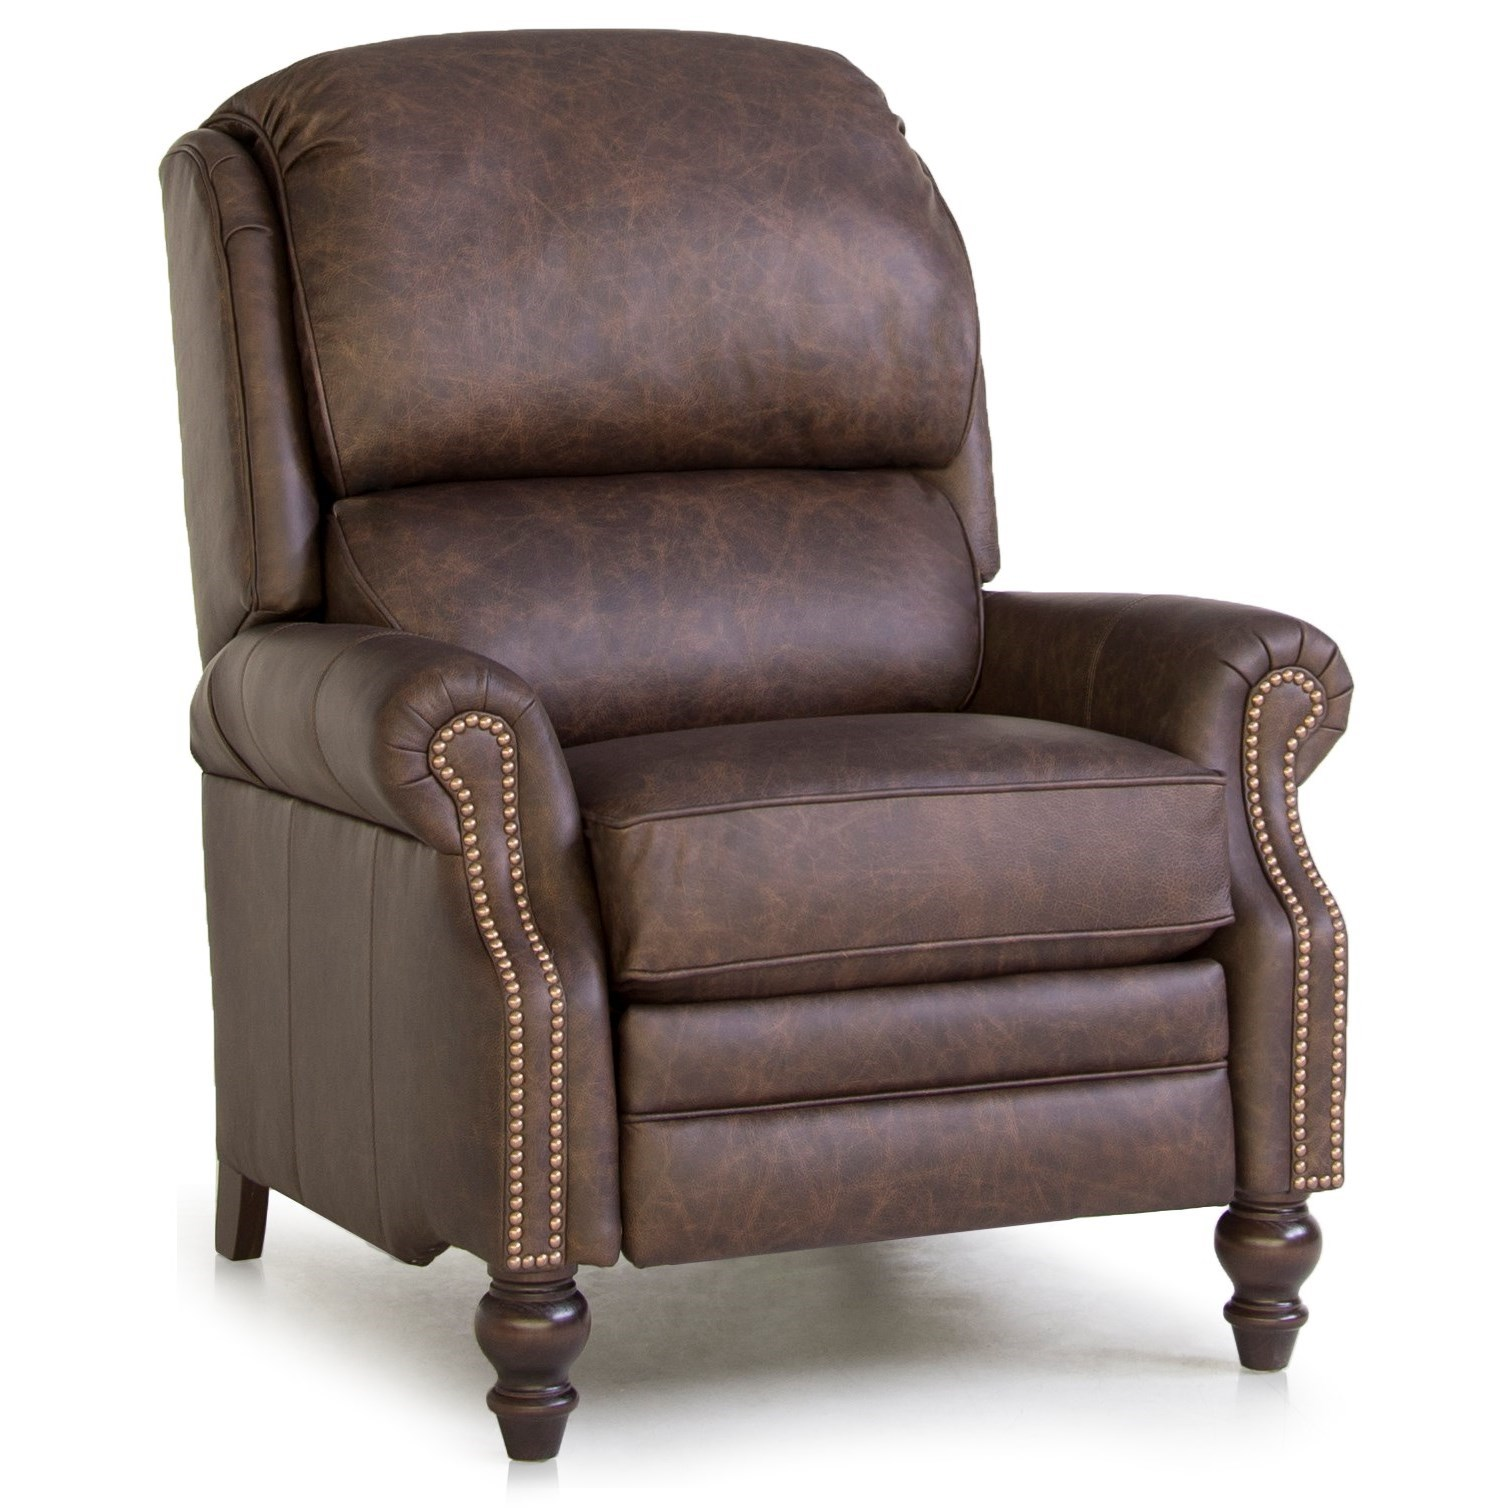 705L Motorized Reclining Chair by Smith Brothers at Sprintz Furniture